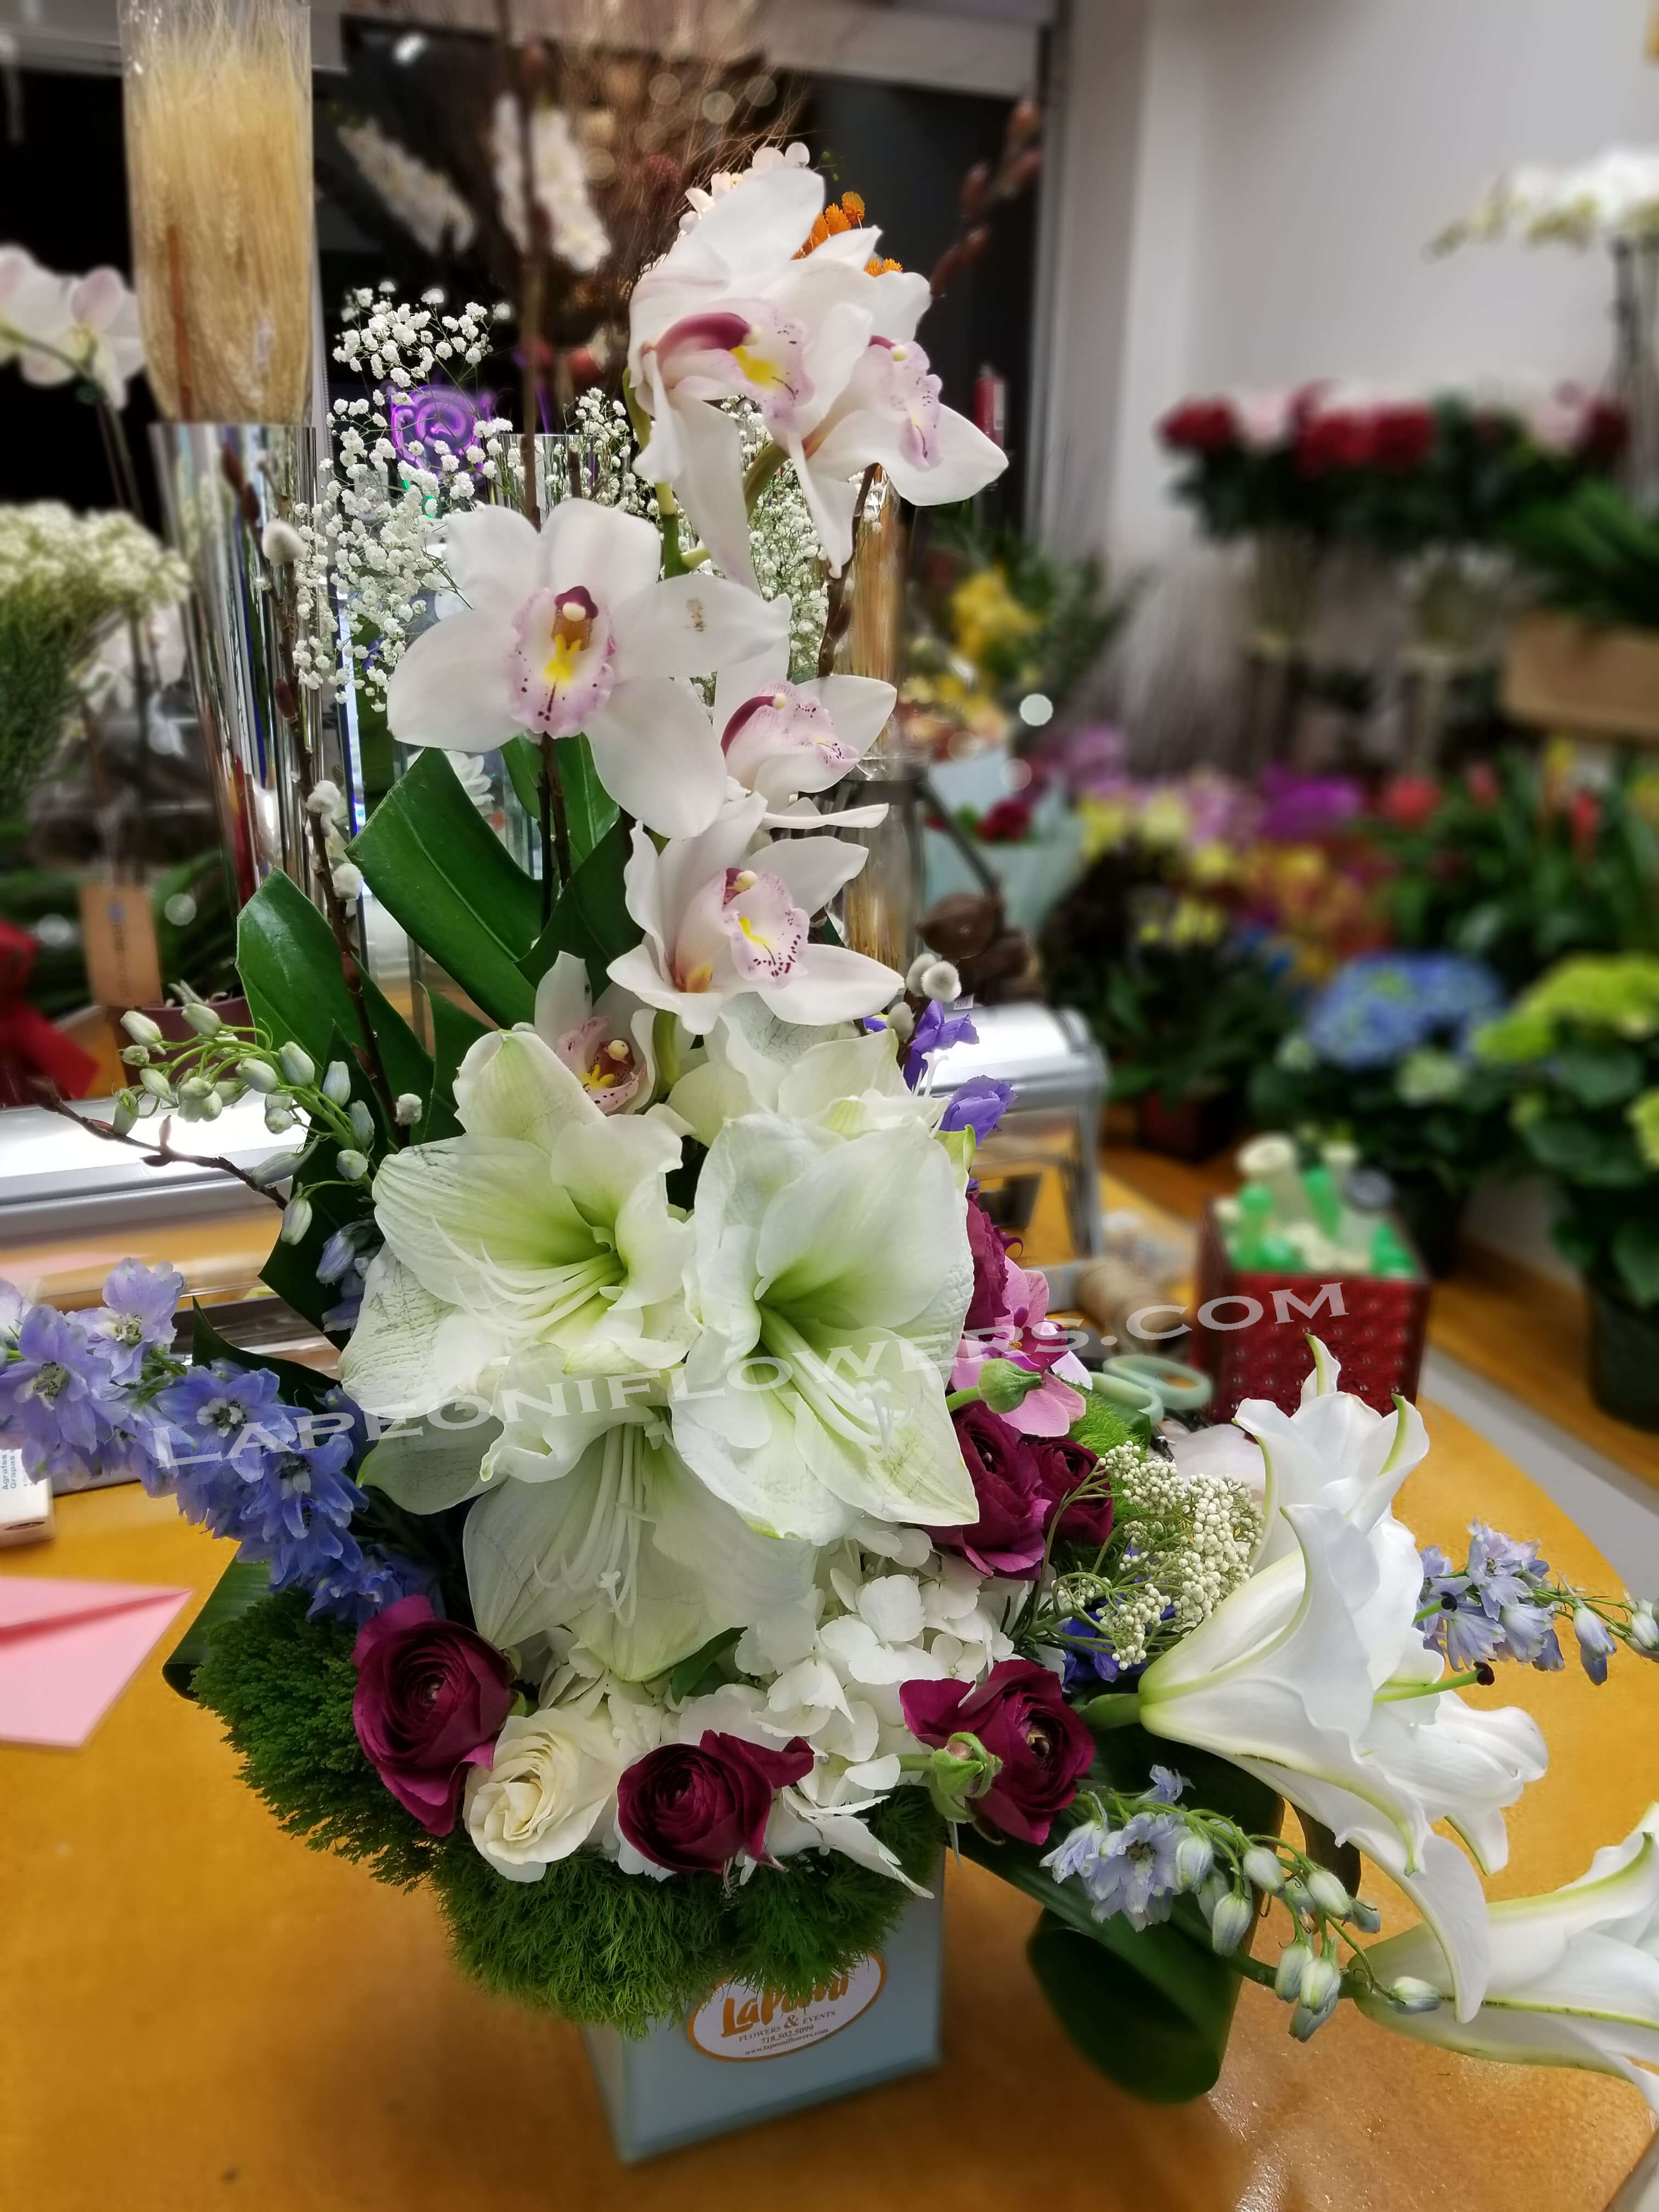 Special Moment Flowers - Lapeoni Flowers and Events